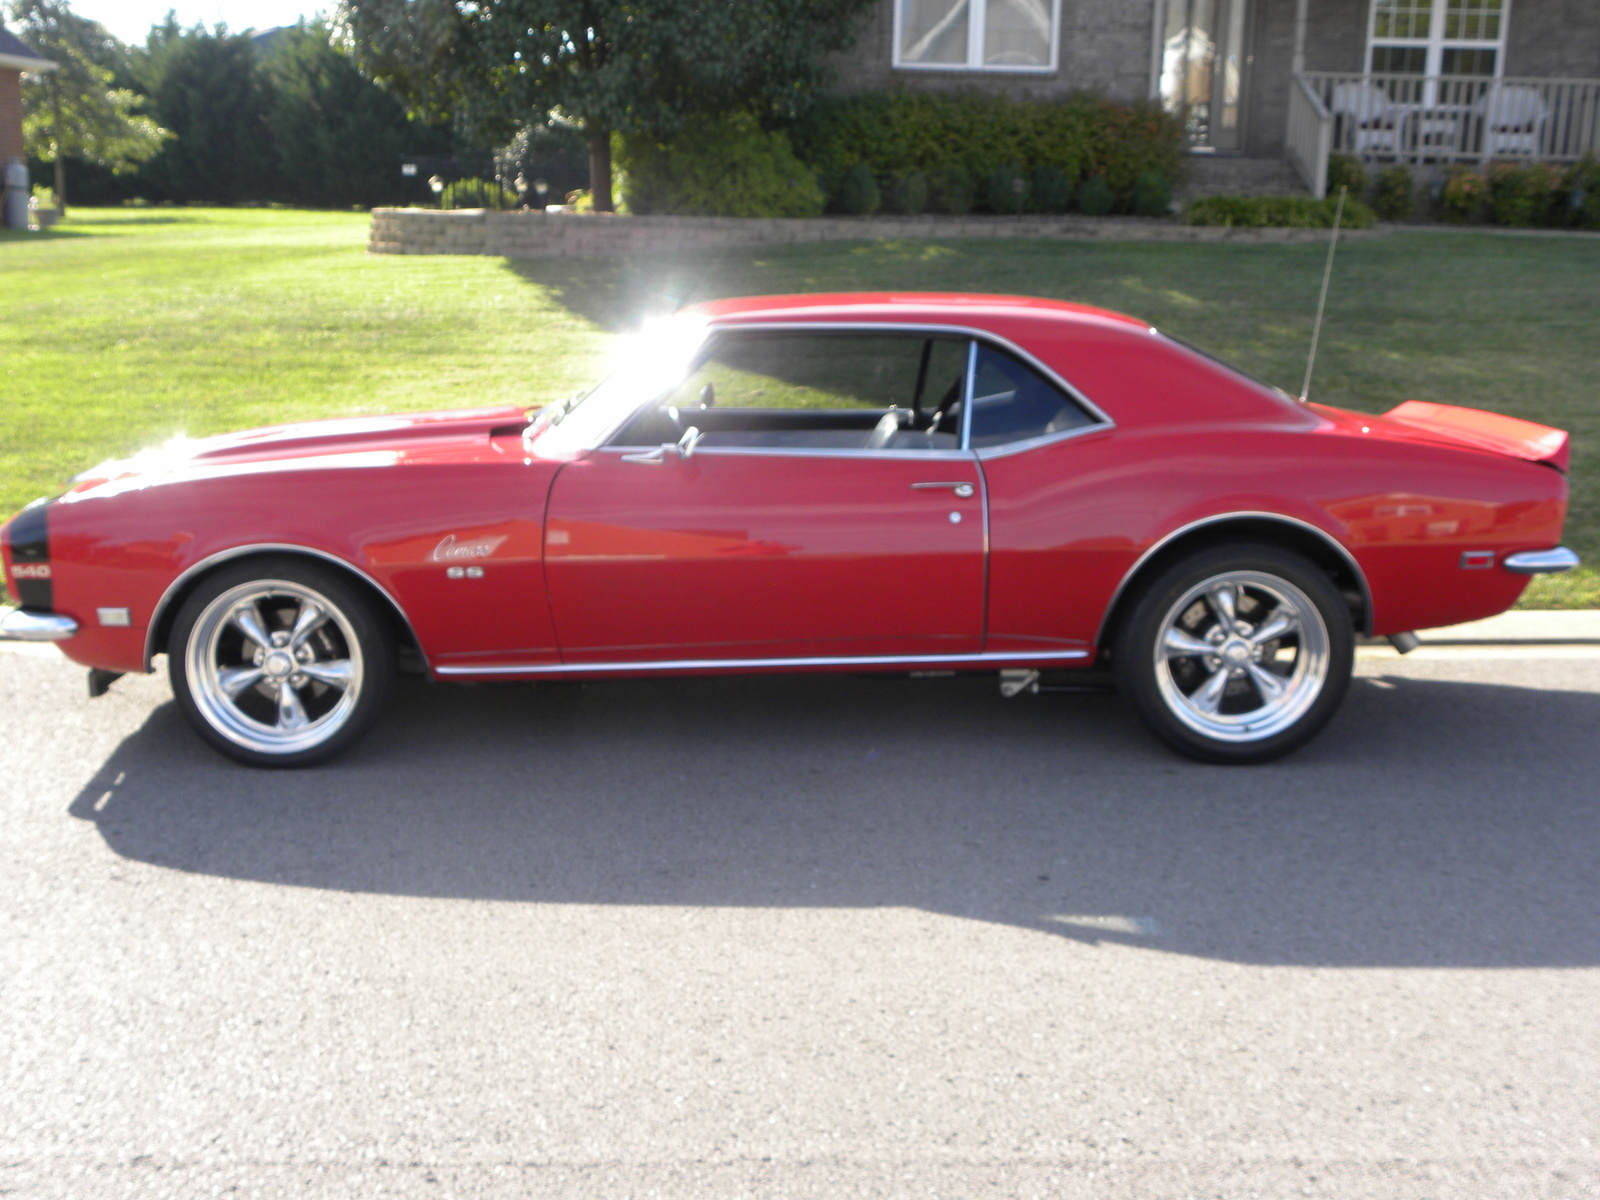 Picture of 1968 chevrolet camaro ss exterior